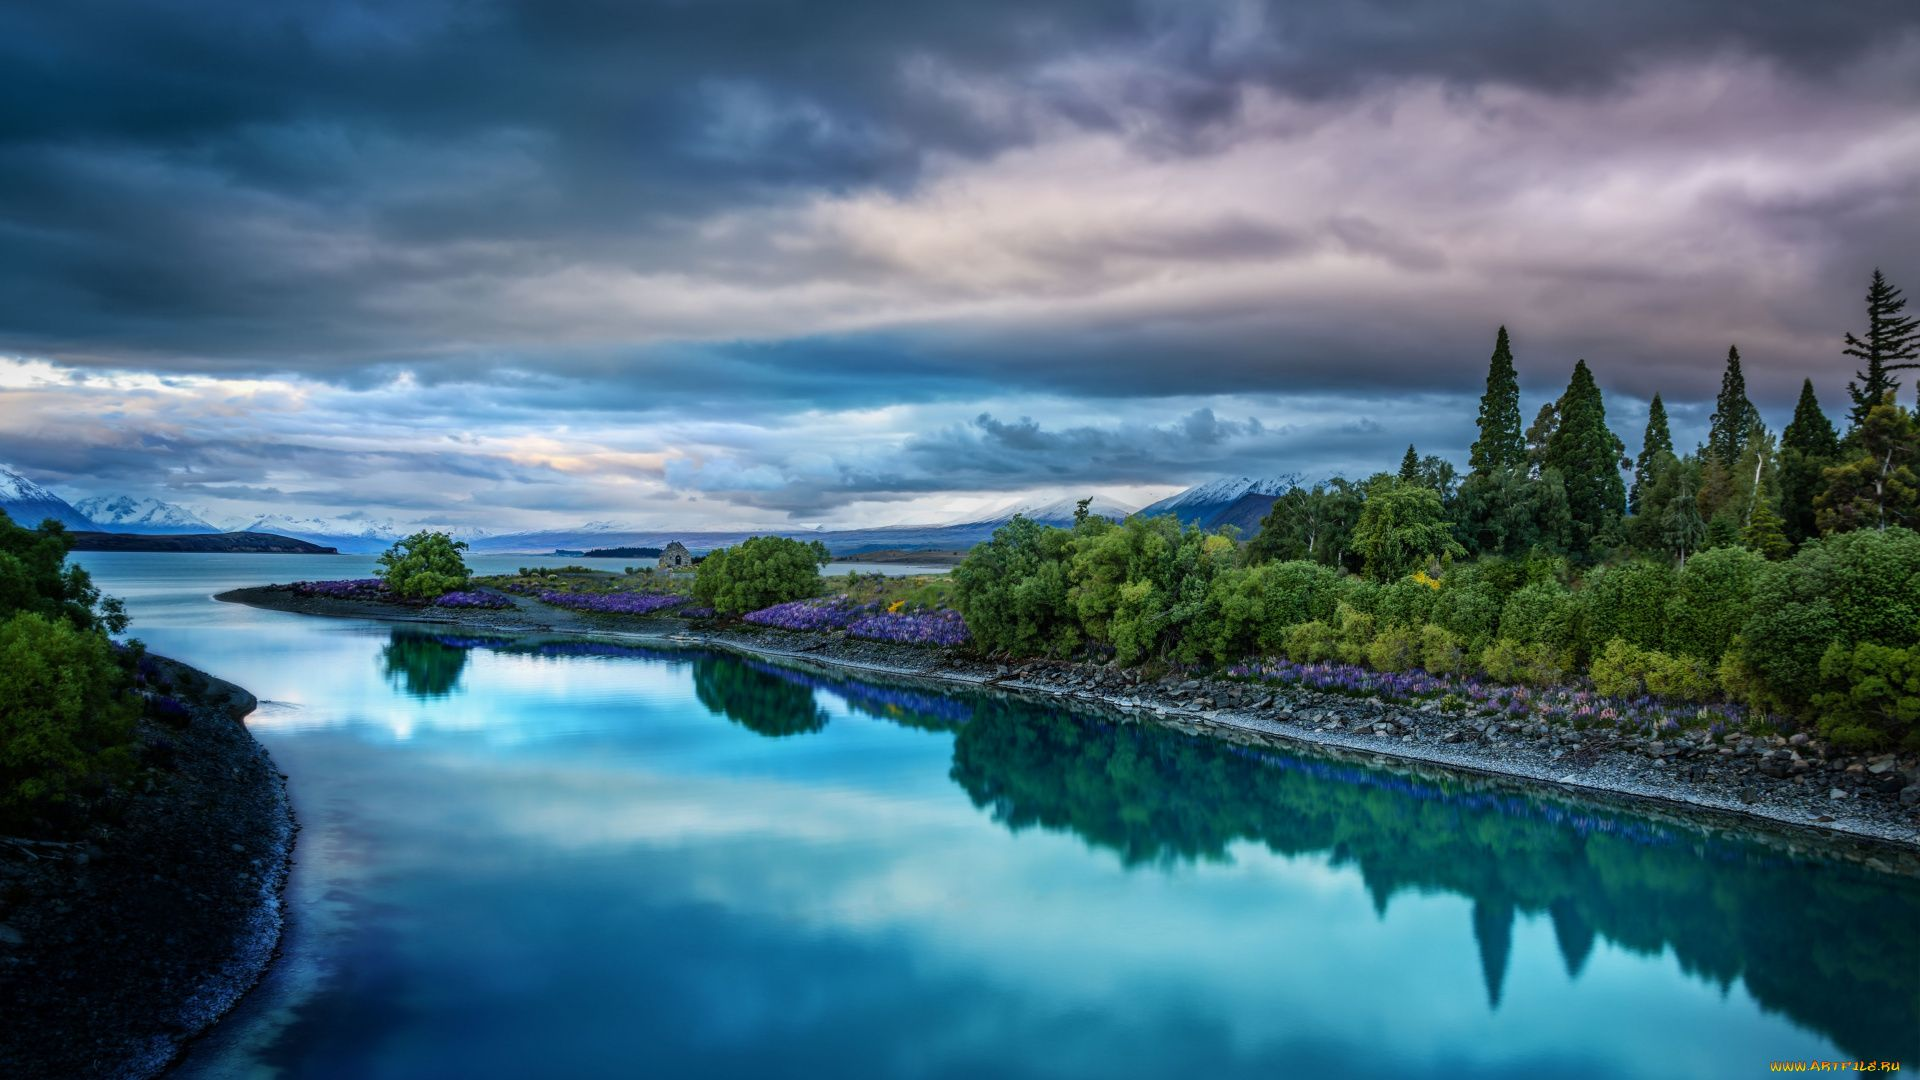 The Landscapes Of New Zealand